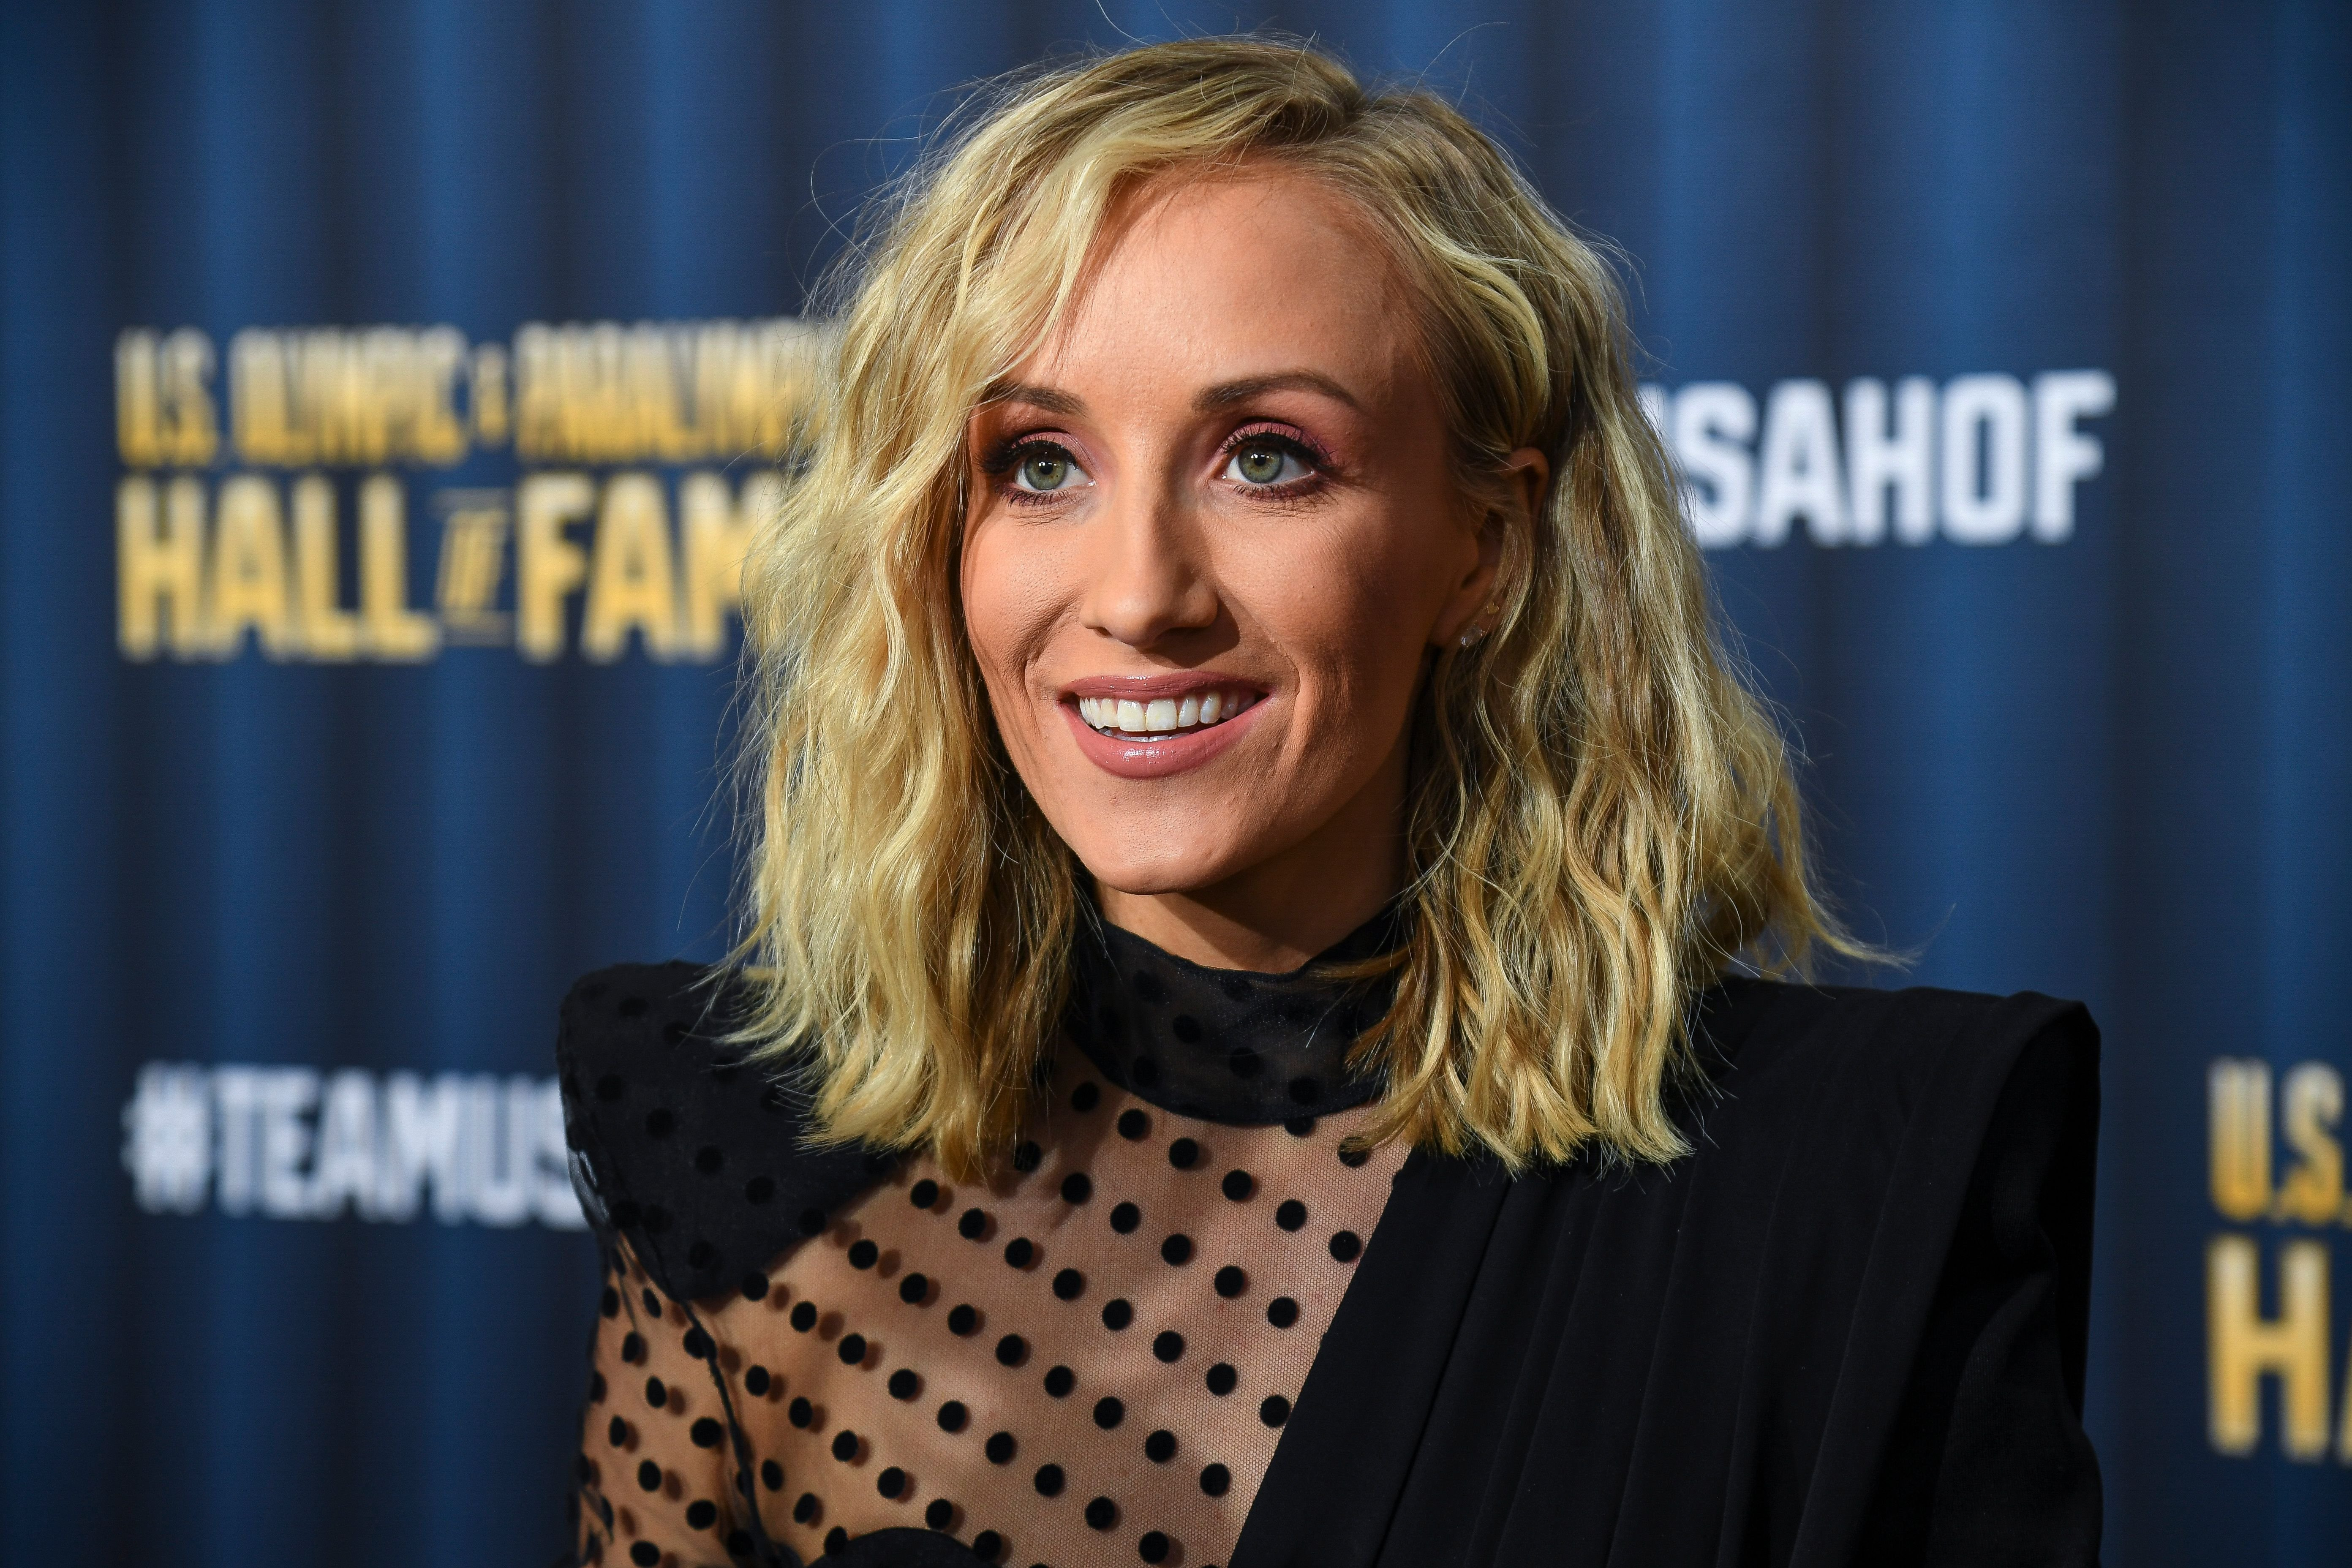 Nastia Liukin talks to the media on the red carpet before the U.S. Olympic Hall of Fame Class of 2019 Induction Ceremony on November 1, 2019 | Photo: Getty Images